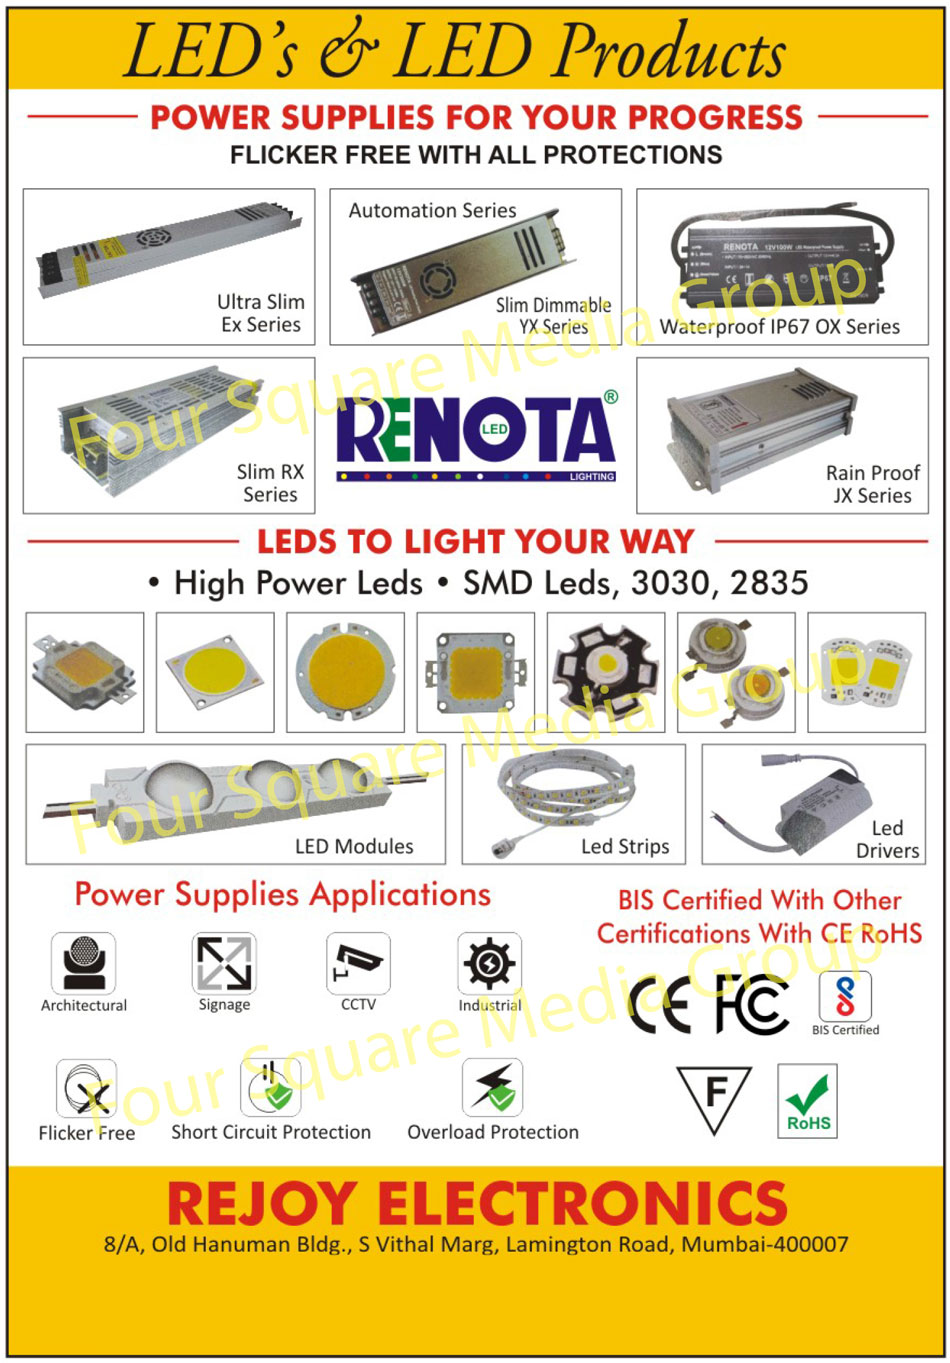 Leds, Led Products, Power Supplies, High Power Leds, SMD Leds, Led Modules, Led Strips, Led Drivers